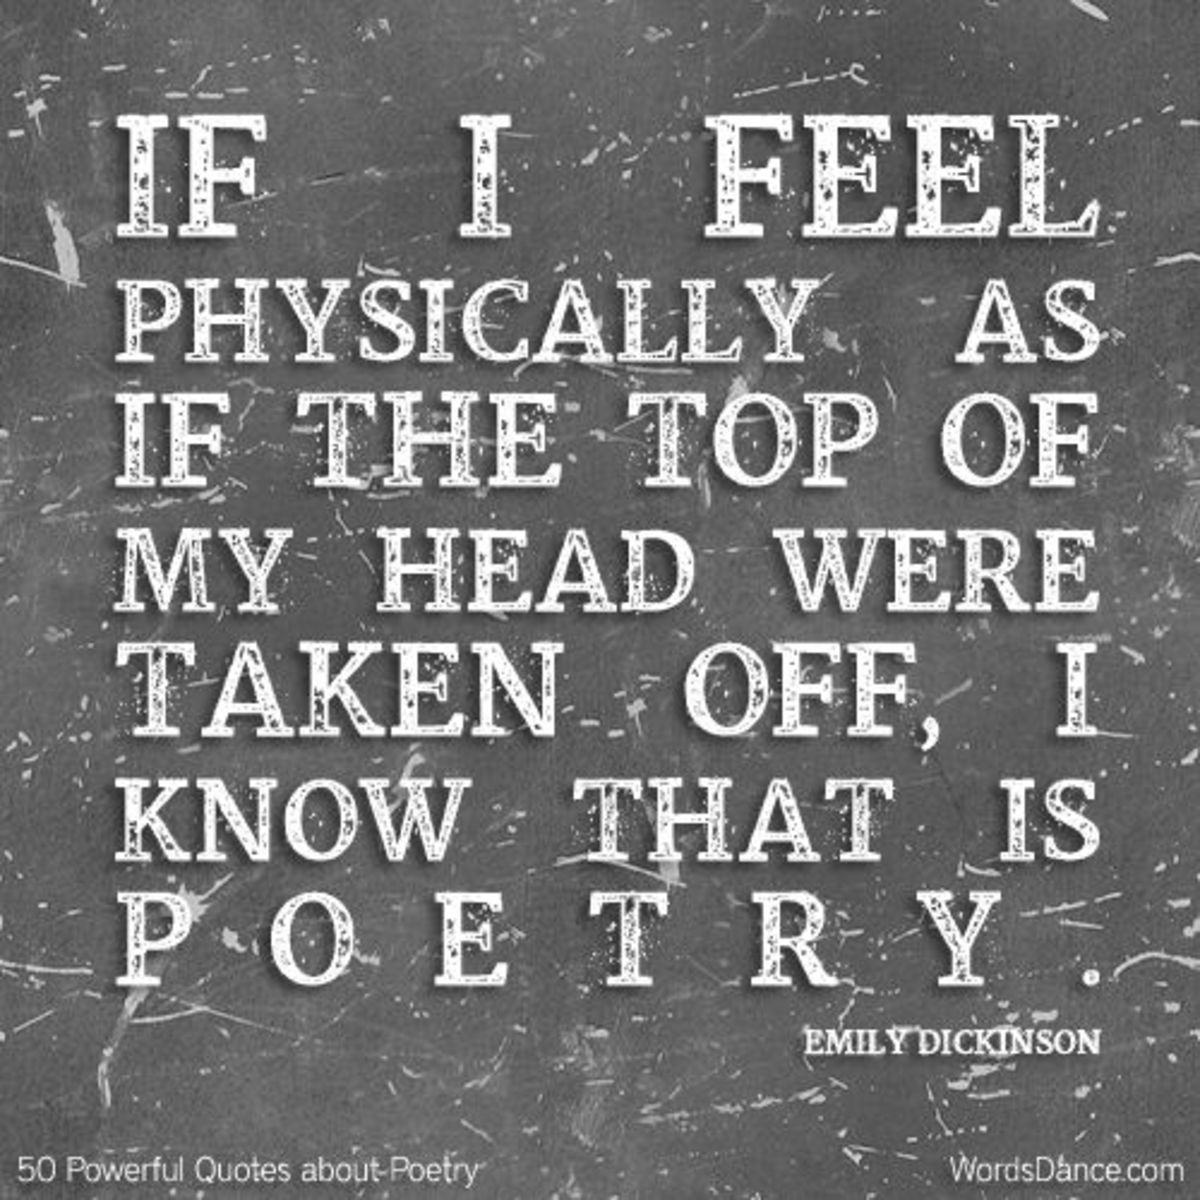 Poetry Interpretation and Misinterpretation